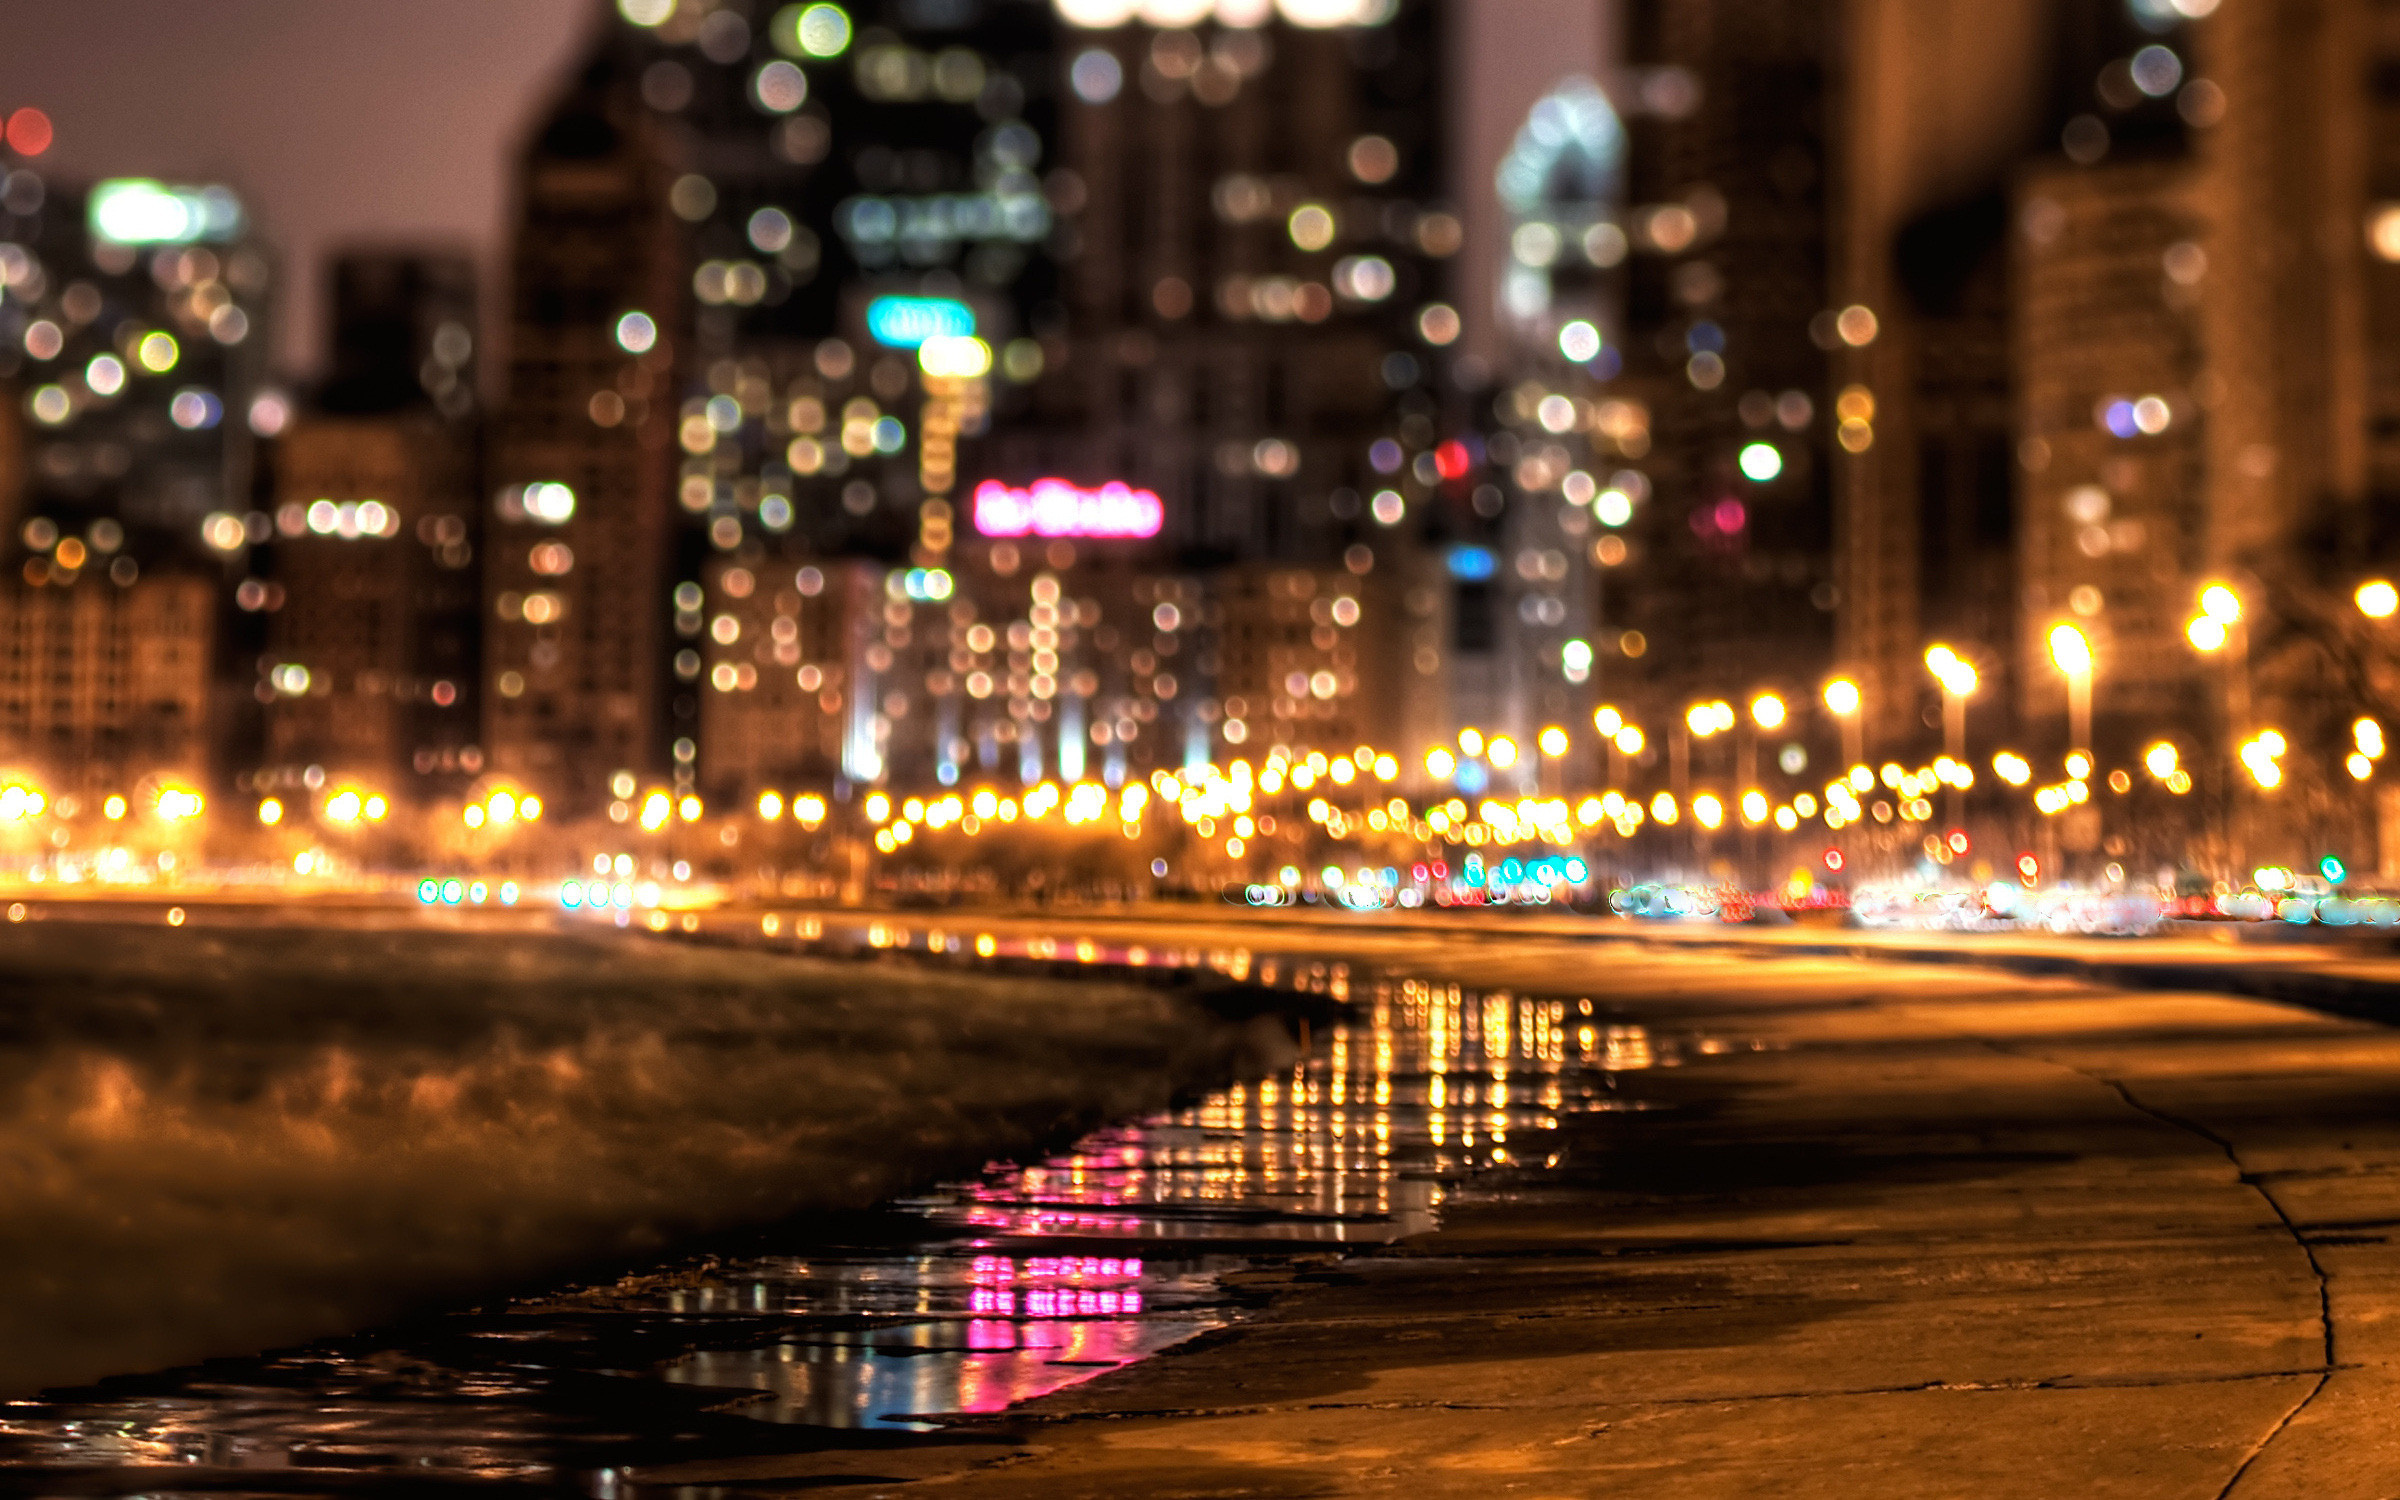 60 Street Wallpaper Hd Night City Android Iphone Desktop Hd Backgrounds Wallpapers 1080p 4k 2400x1500 2020